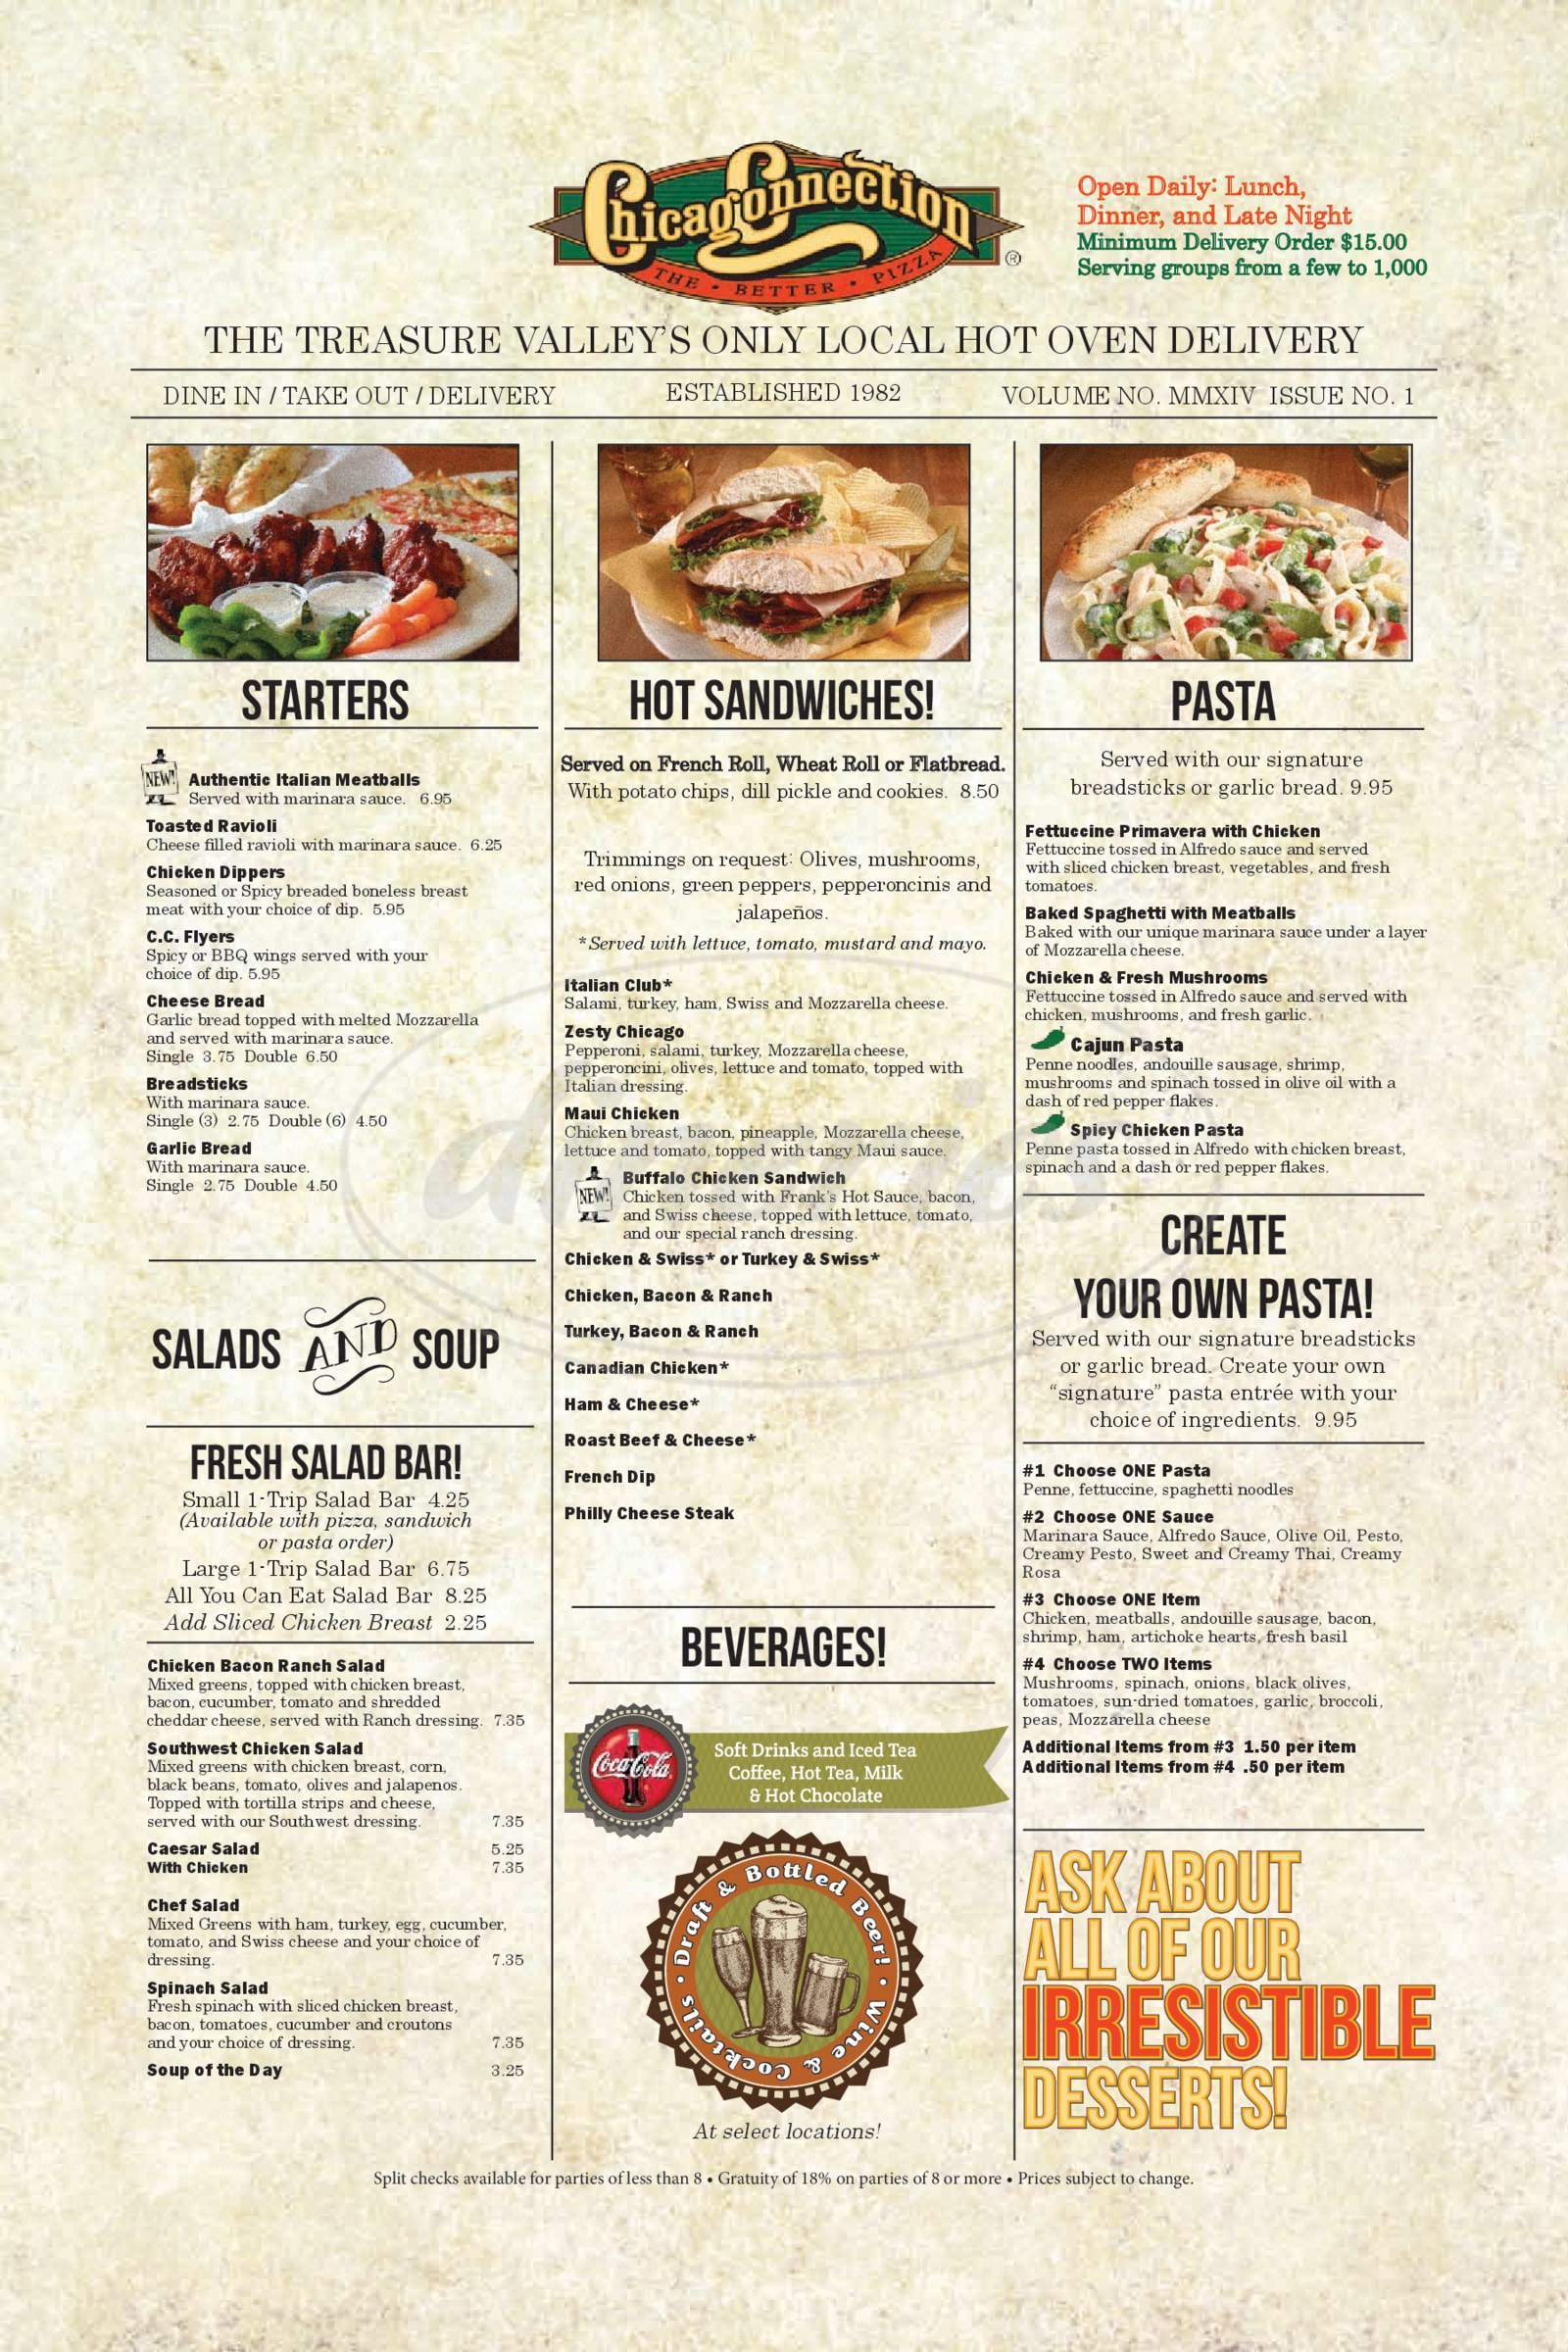 menu for Chicago Connection Pizza